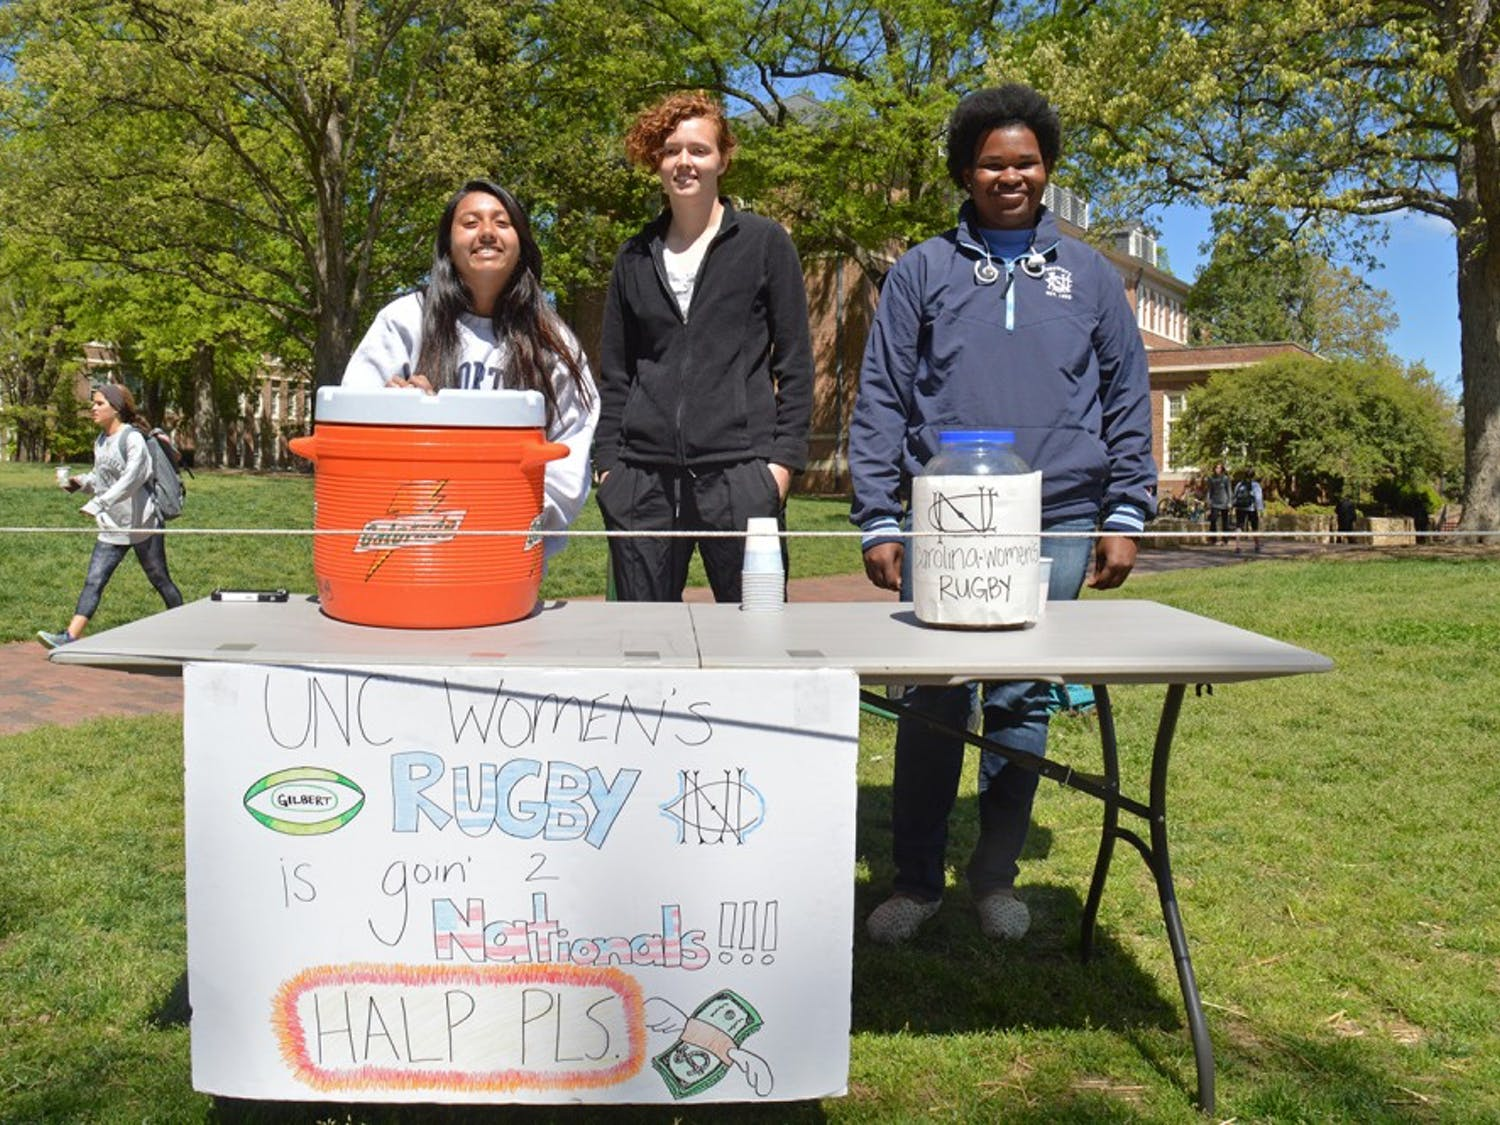 The Women's Rugby team is going to the national championship game but has to raise the money to get there. 